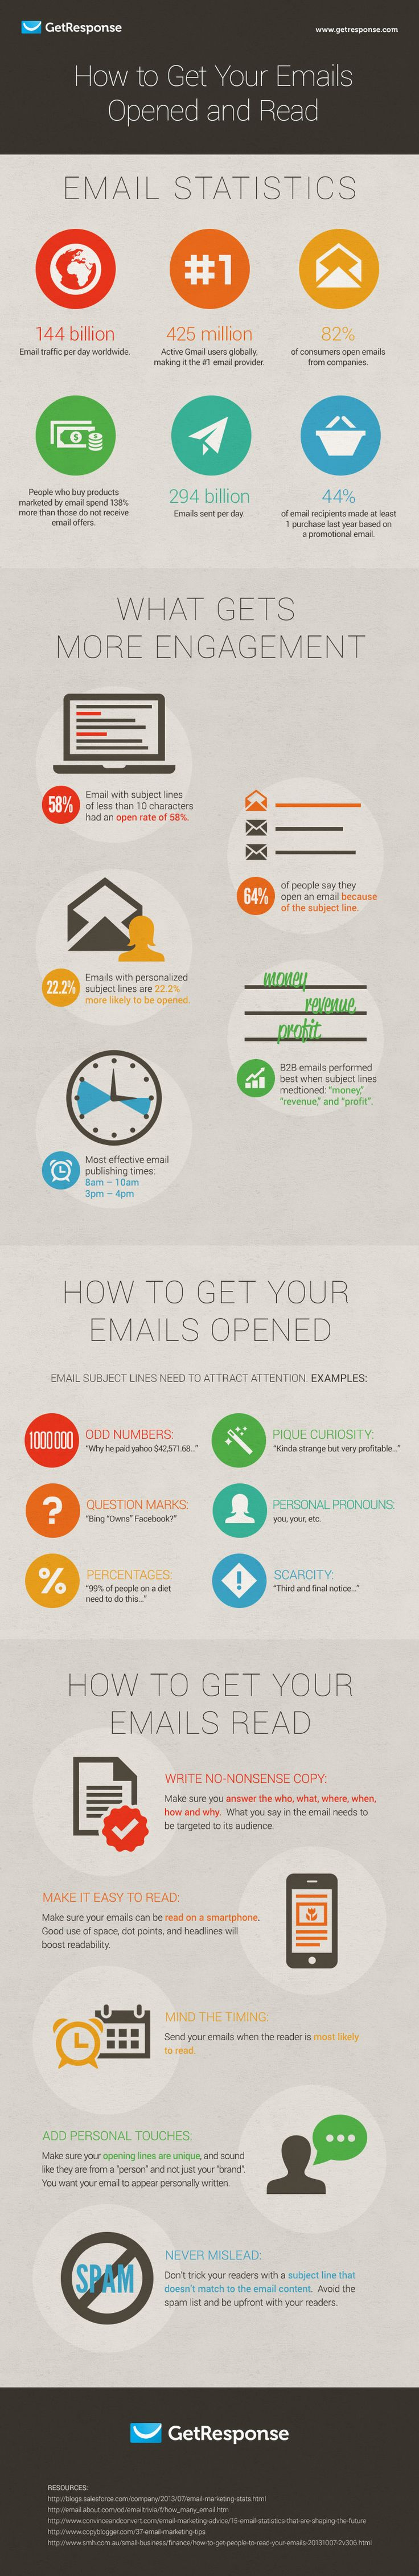 How to Get Your Emails Opened and Read. #infographic